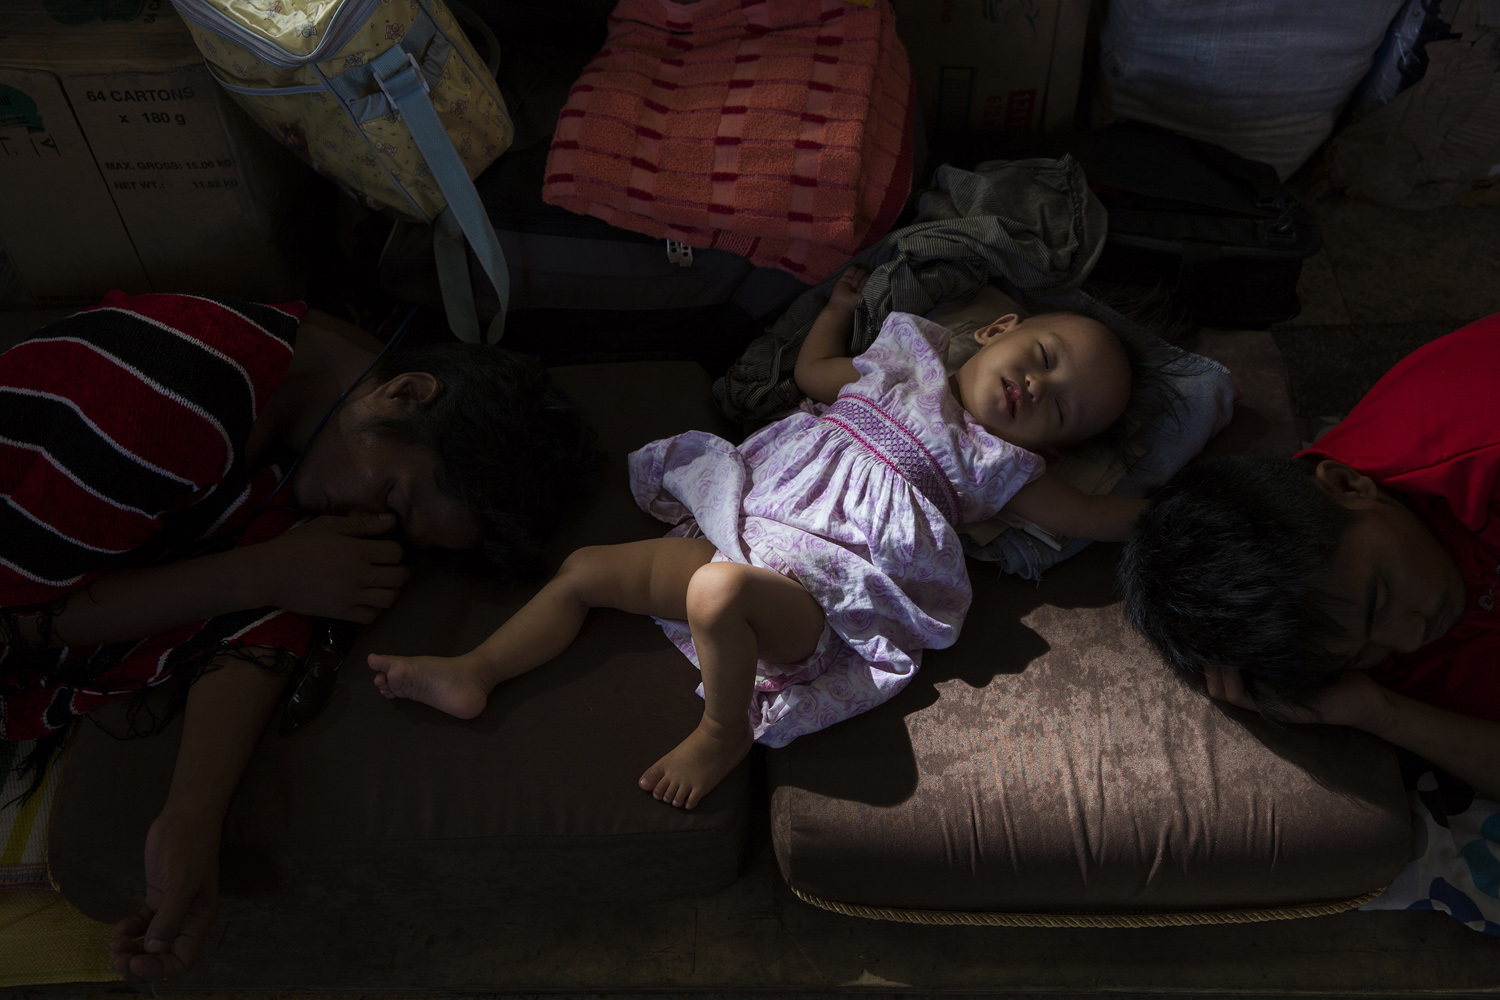 A girl sleeps in a church being used as a shelter for those made homeless by the storm, Nov. 13, 2013.